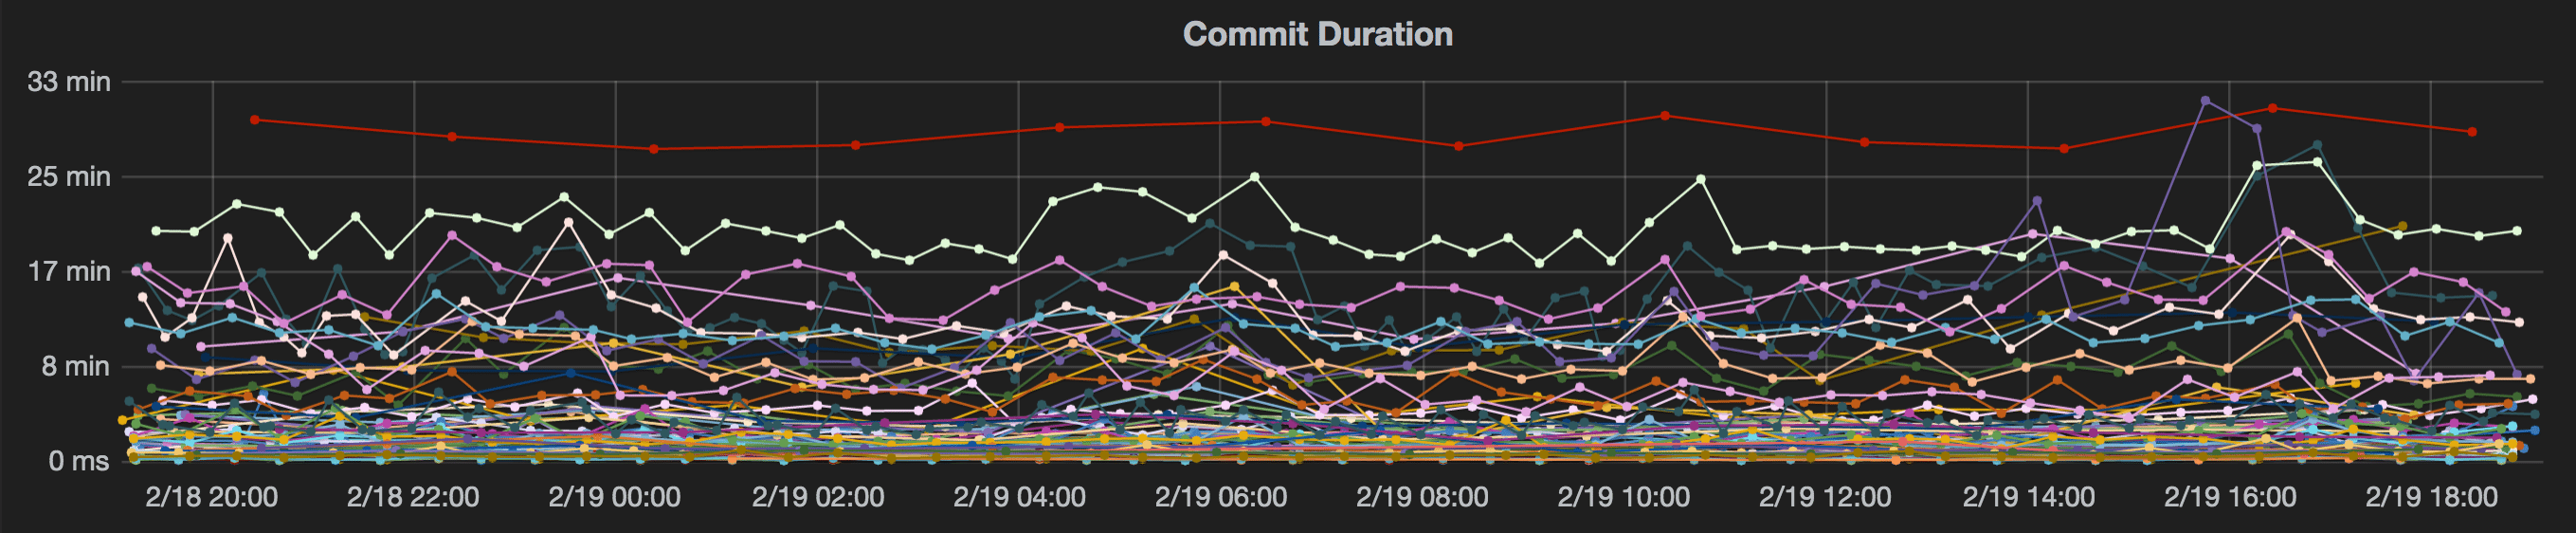 hudi_commit_duration.png